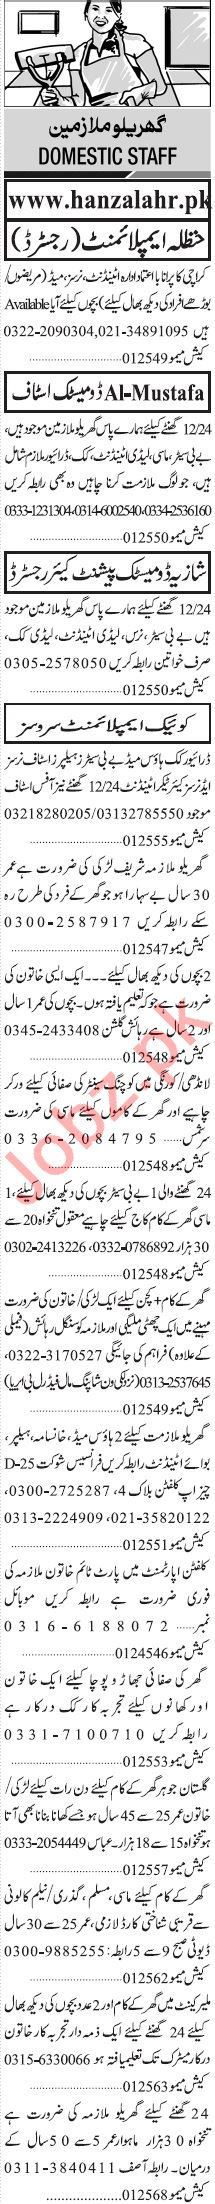 Jang Sunday Classified Ads 20 Sept 2020 for House Staff